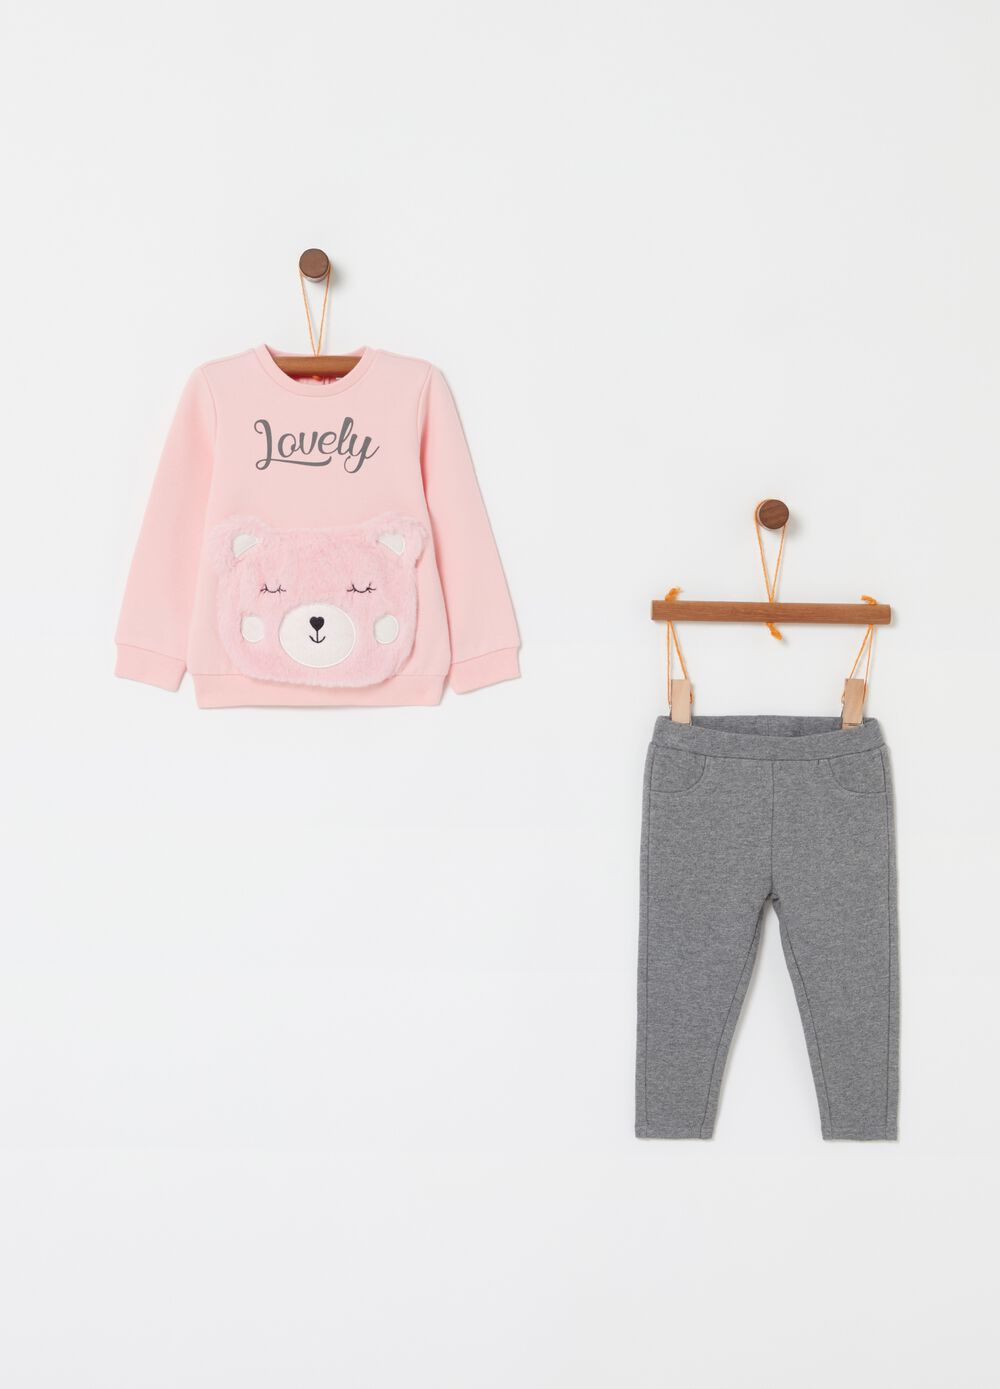 Jogging set with sweatshirt and trousers with teddy bear